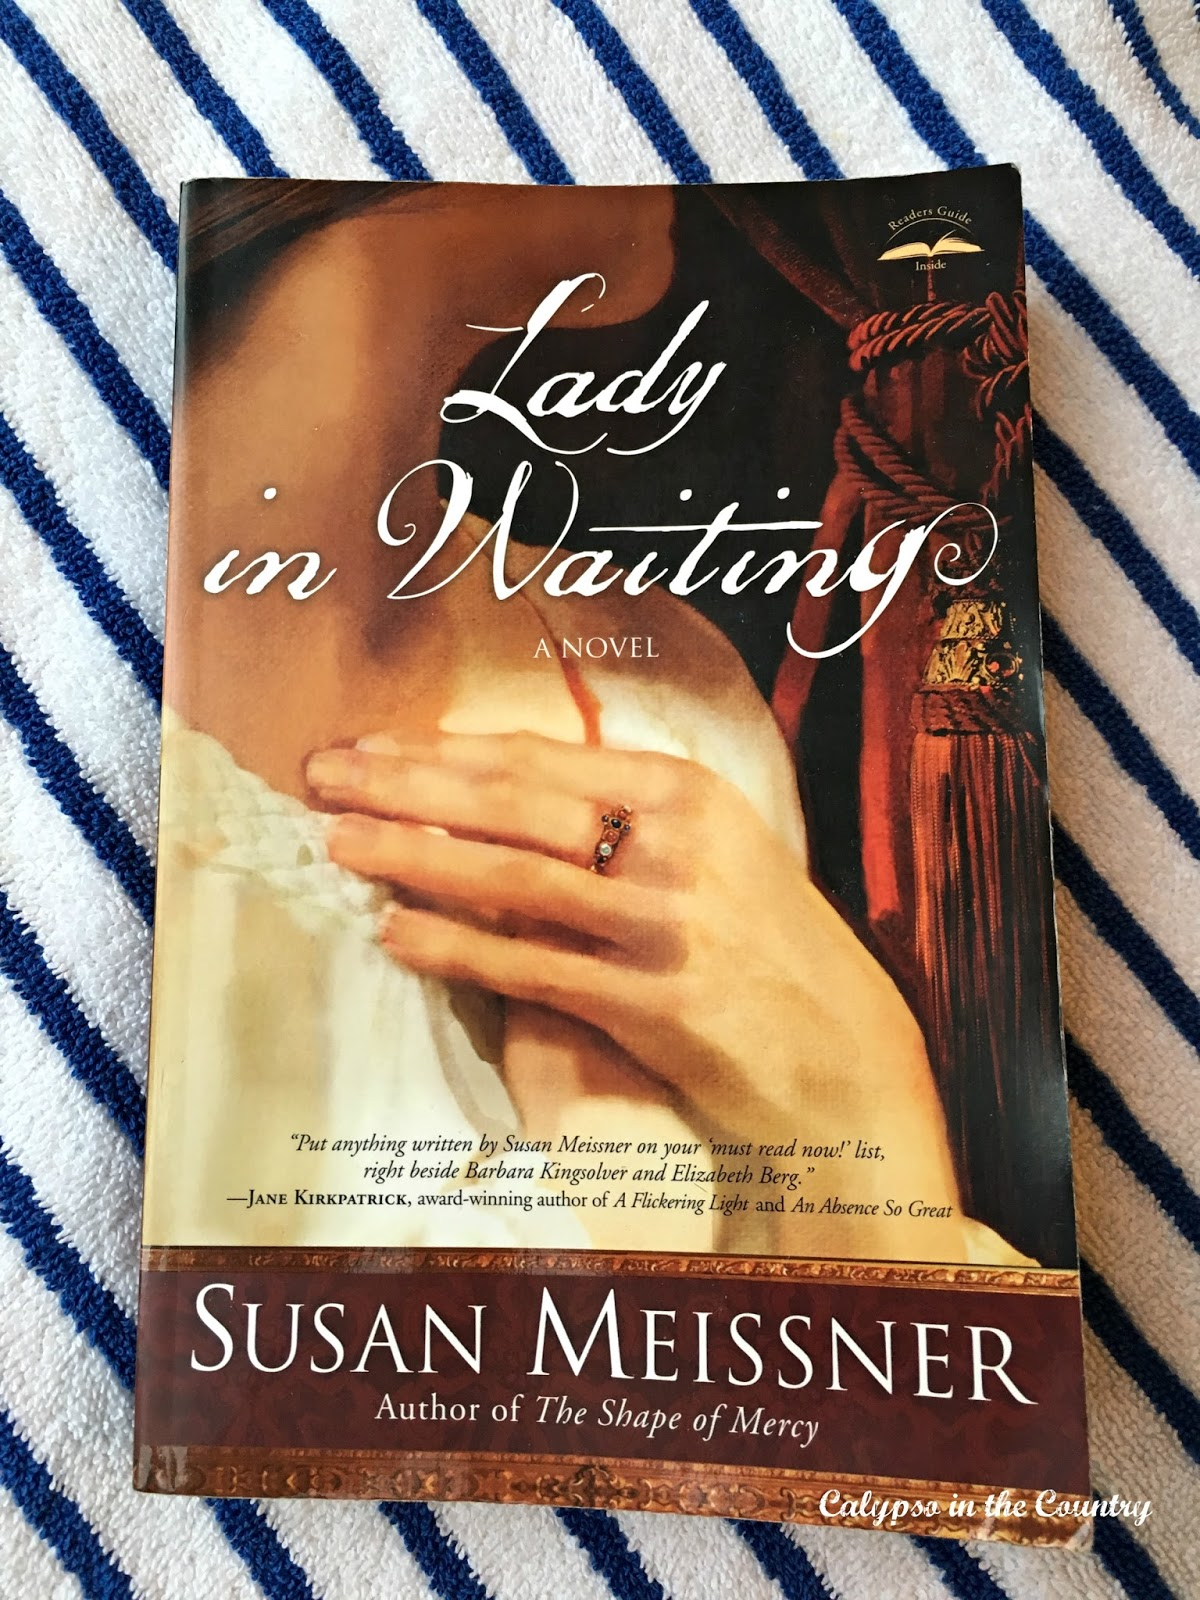 Lady in Waiting - another amazing novel by Susan Meissner